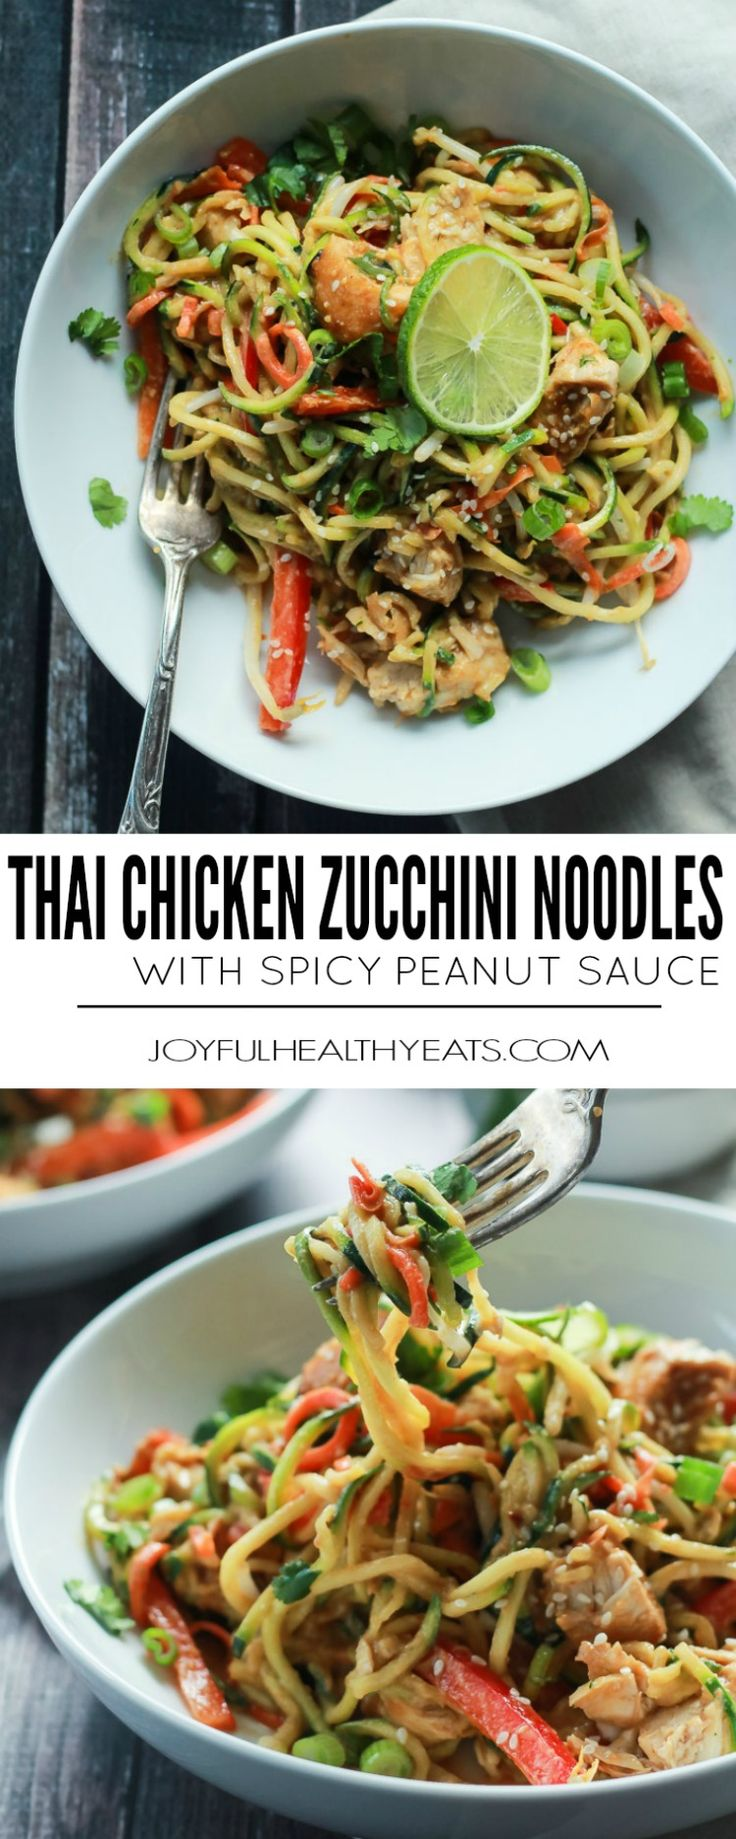 Thai Chicken Zucchini Noodles recipe with Spicy Peanut Sauce | joyfulhealthyeats.com #paleo #glutenfree #zoodles #paleo #30minutemeal #easy #recipes